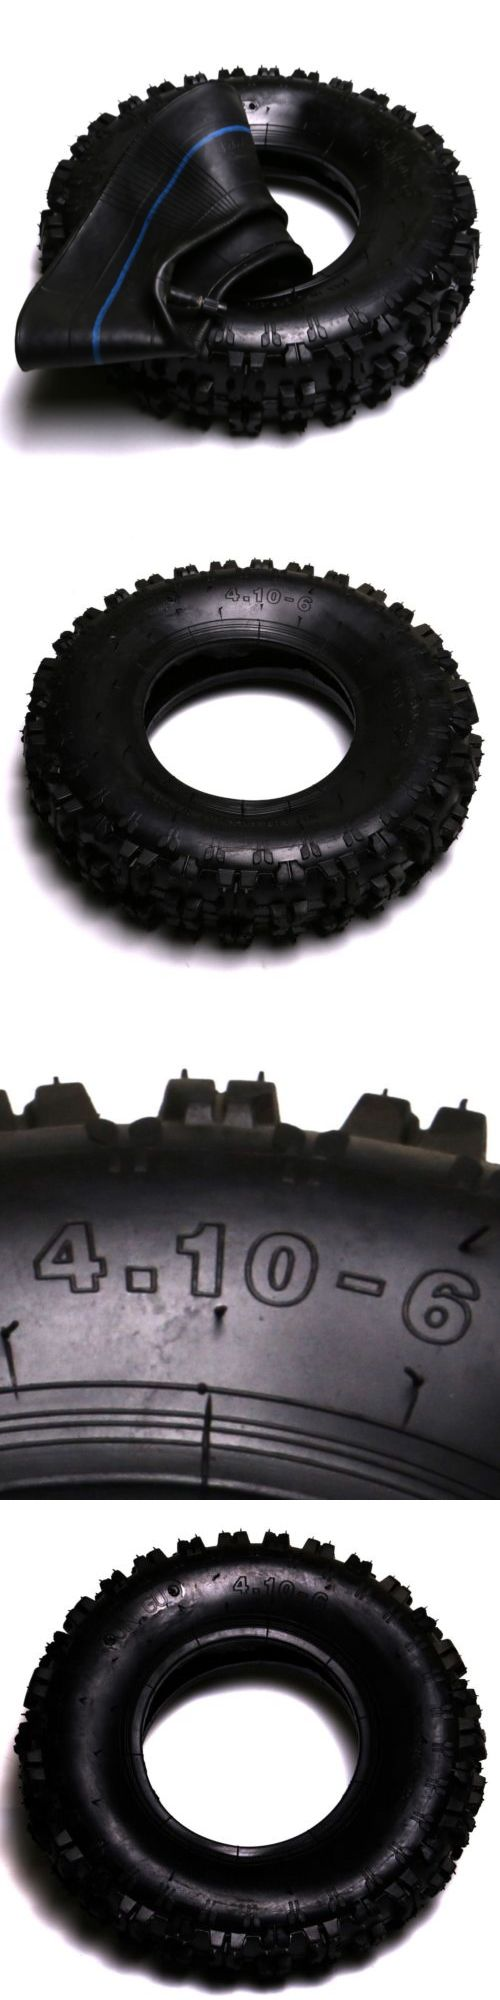 Parts and Accessories 64657: 4.10 -6 3.50 - 6 Tires And Tubes Go-Kart Cart Gokart Gocart Mini Bike -> BUY IT NOW ONLY: $30.99 on eBay!